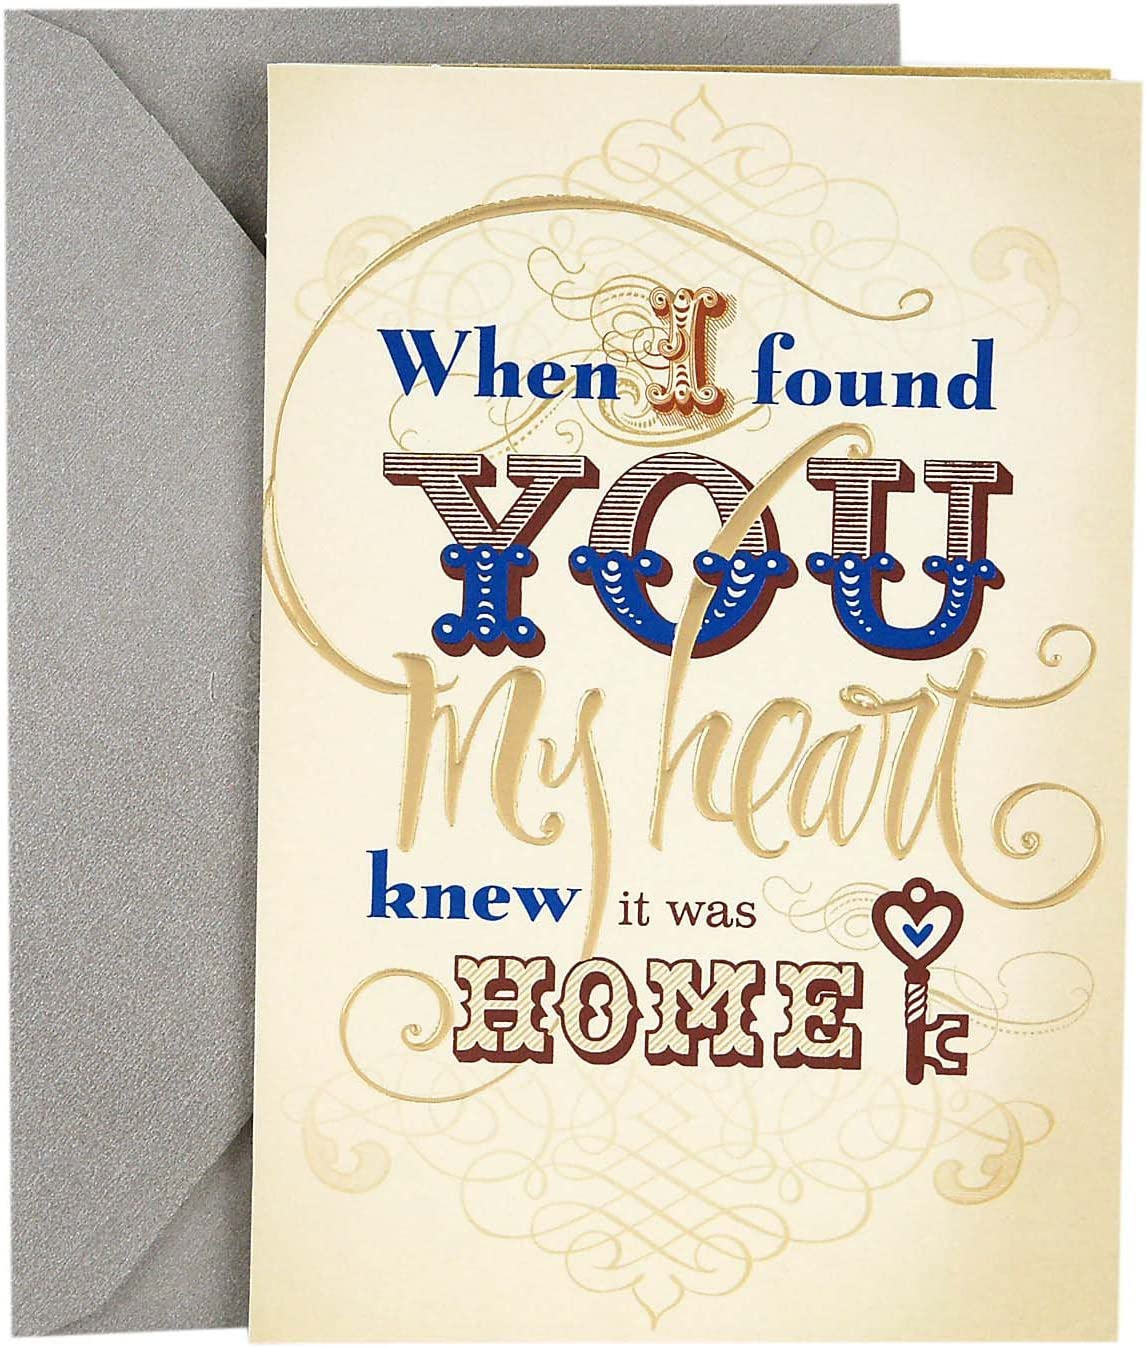 Hallmark Romantic Father's Day Card Husband for Manufacturer regenerated product Life Over item handling We've The